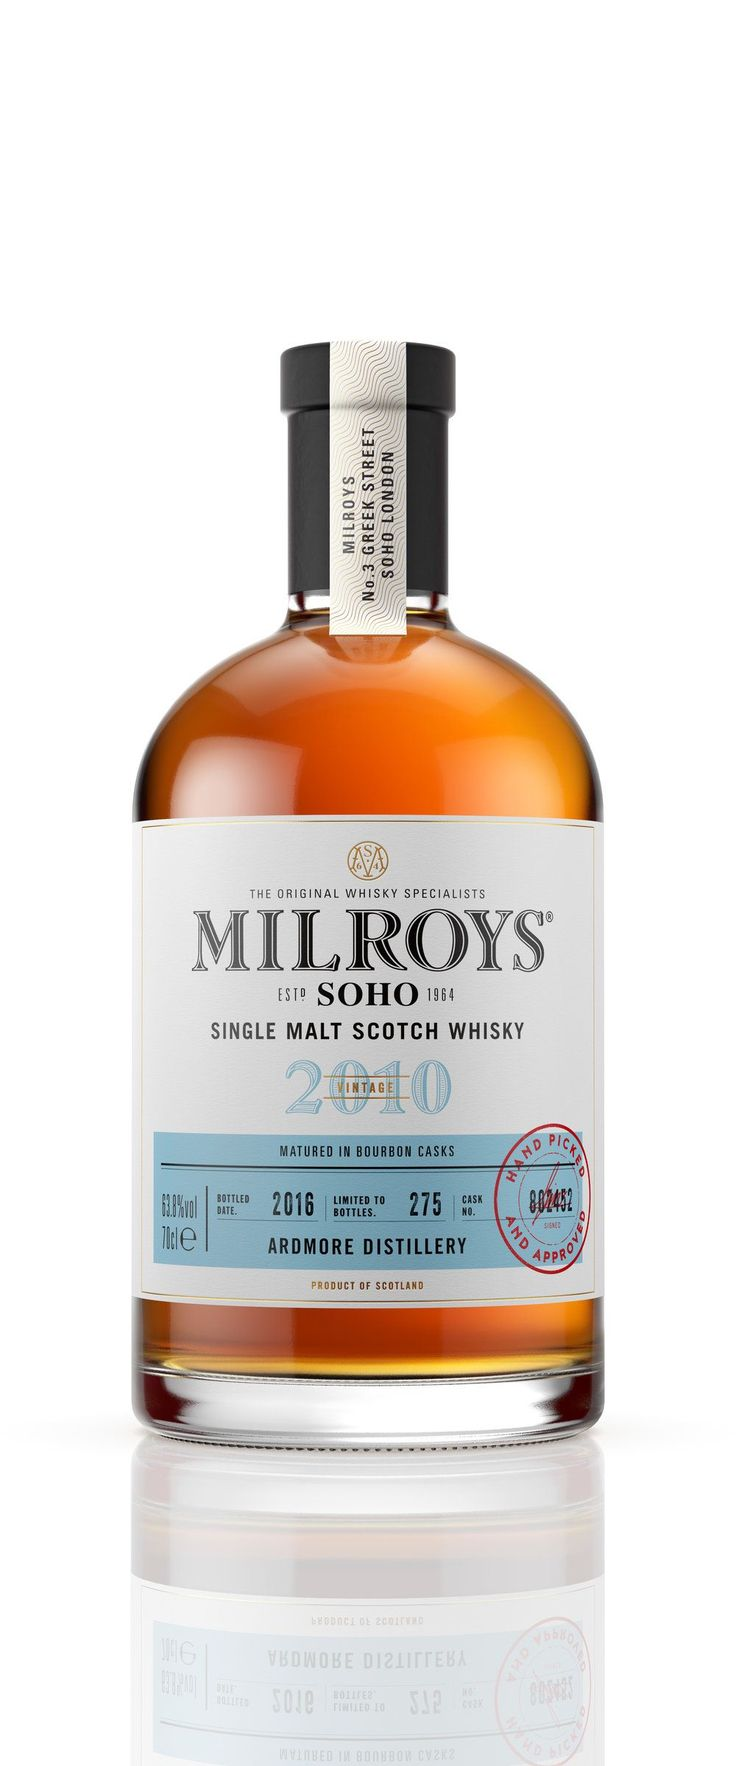 Milroys of Soho Whiskey — The Dieline - Branding & Packaging Design